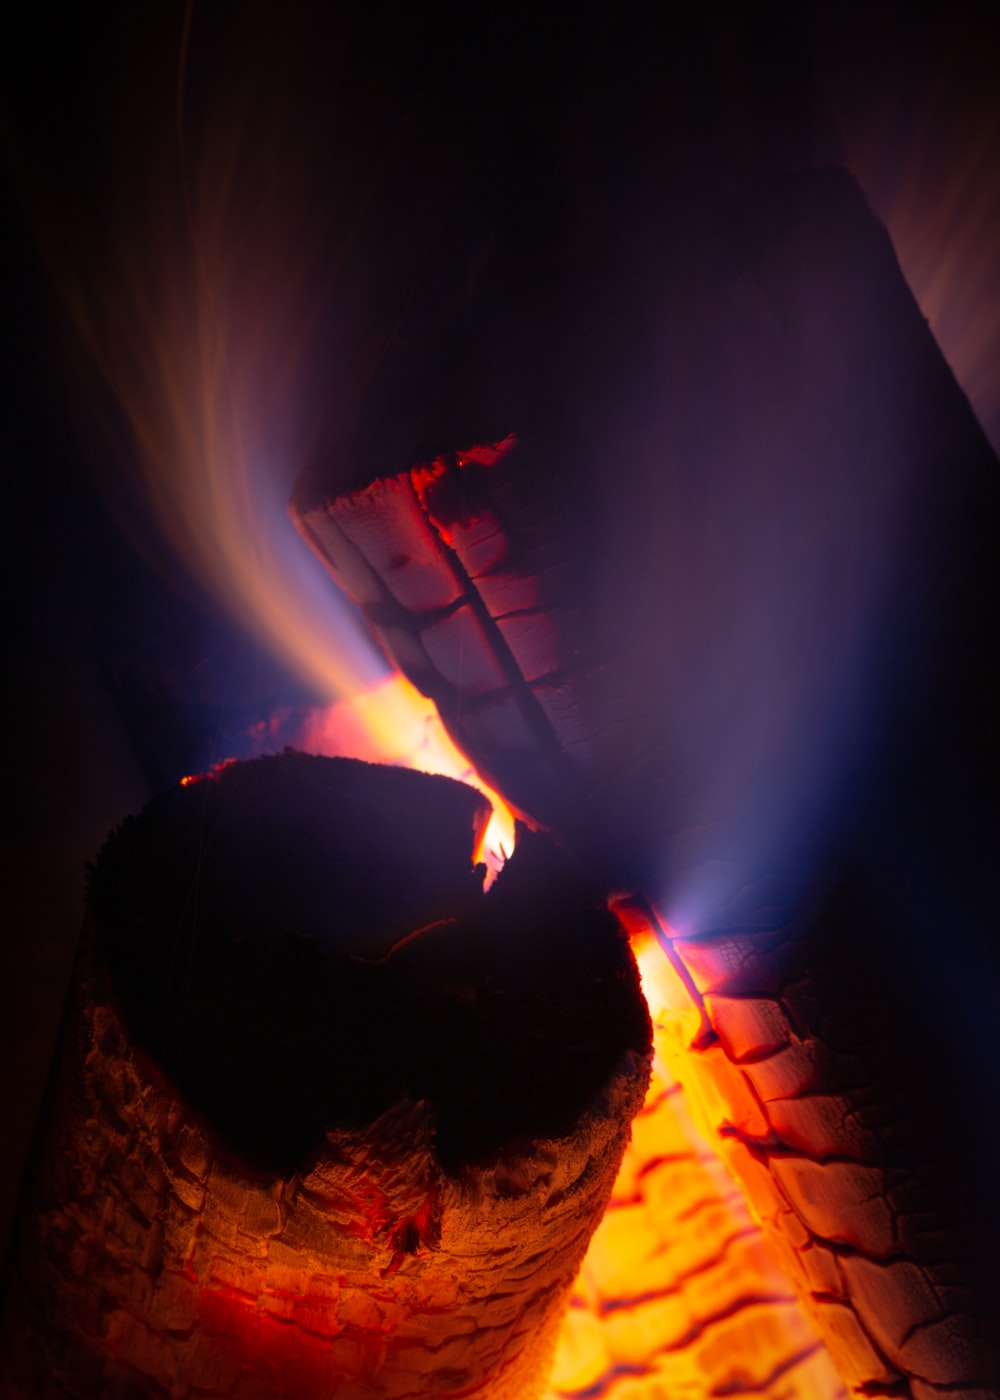 time-lapse photography of burning charcoal